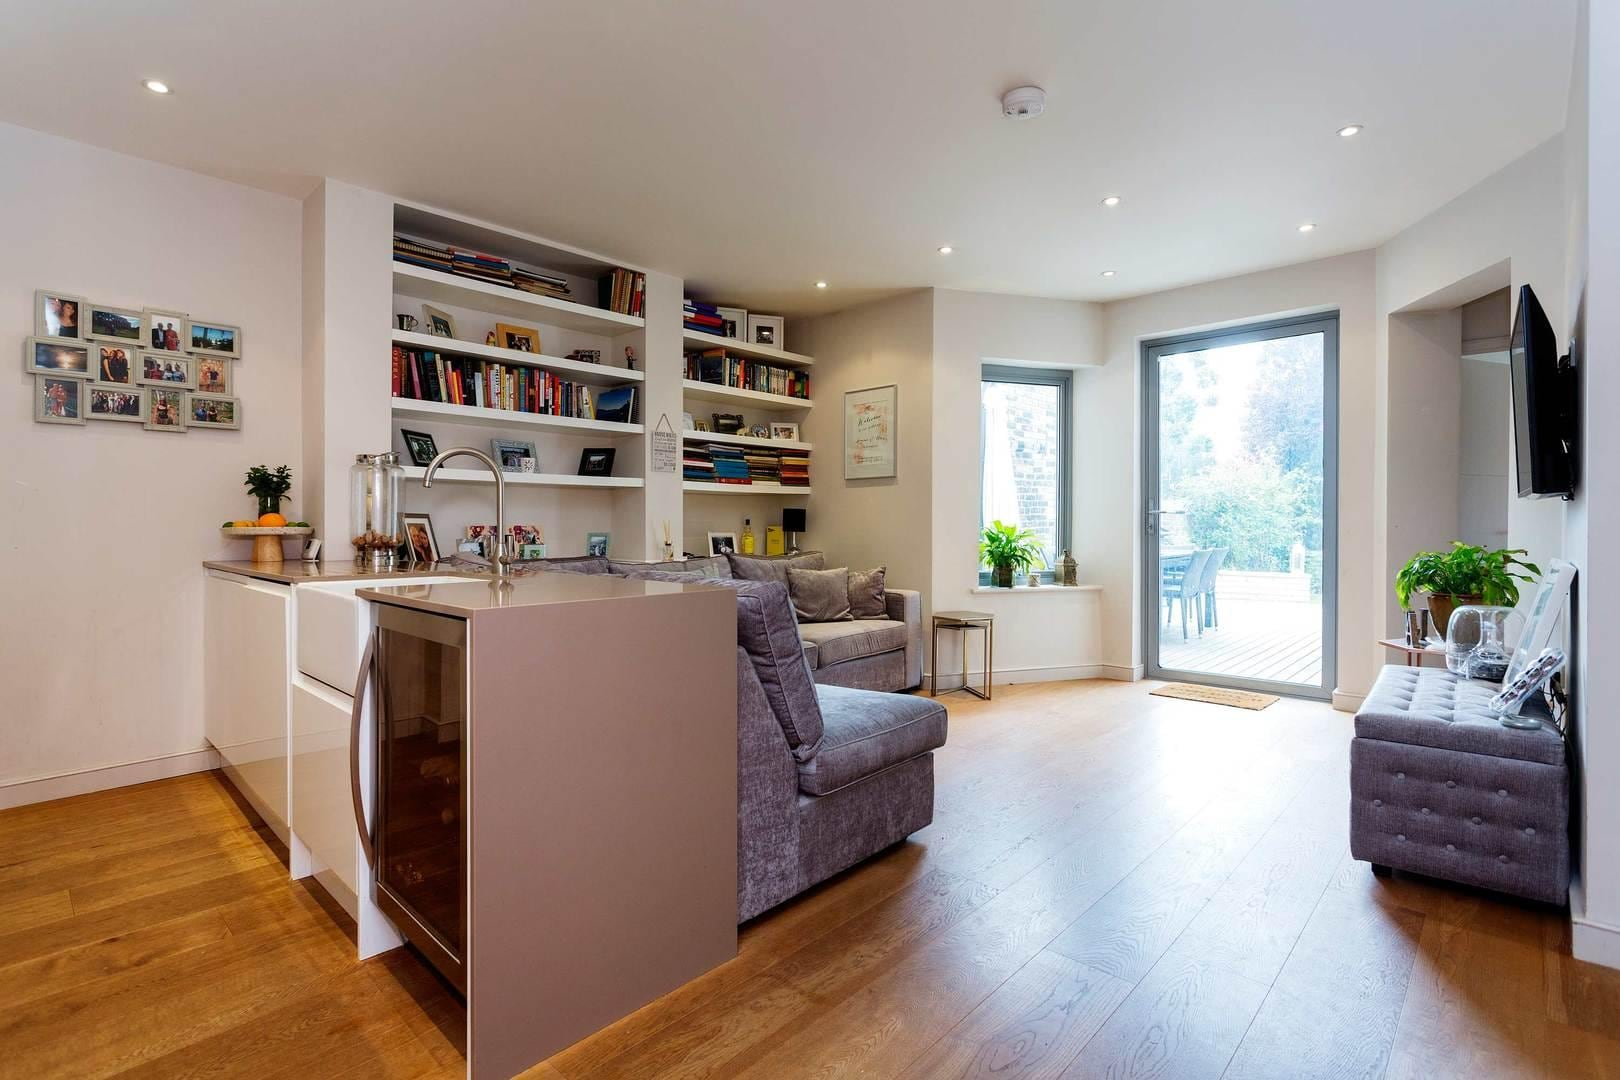 Property Image 2 - Stylish Maida Vale Apartment with Attractive Garden